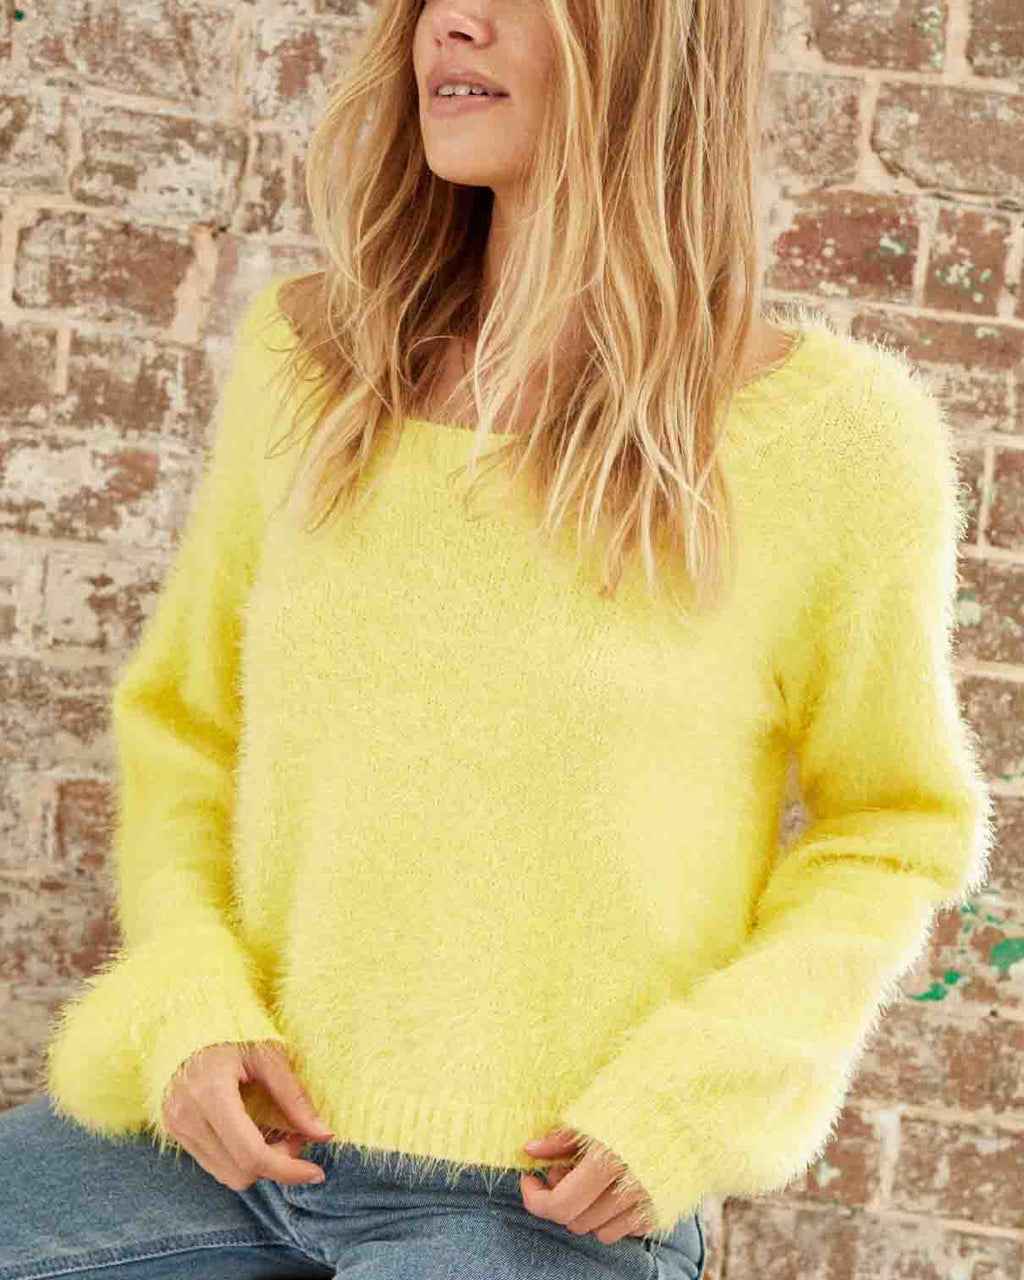 Final Sale - Somedays Lovin - Clover Fields Knitted Fuzzy Jumper/Sweater in Marigold